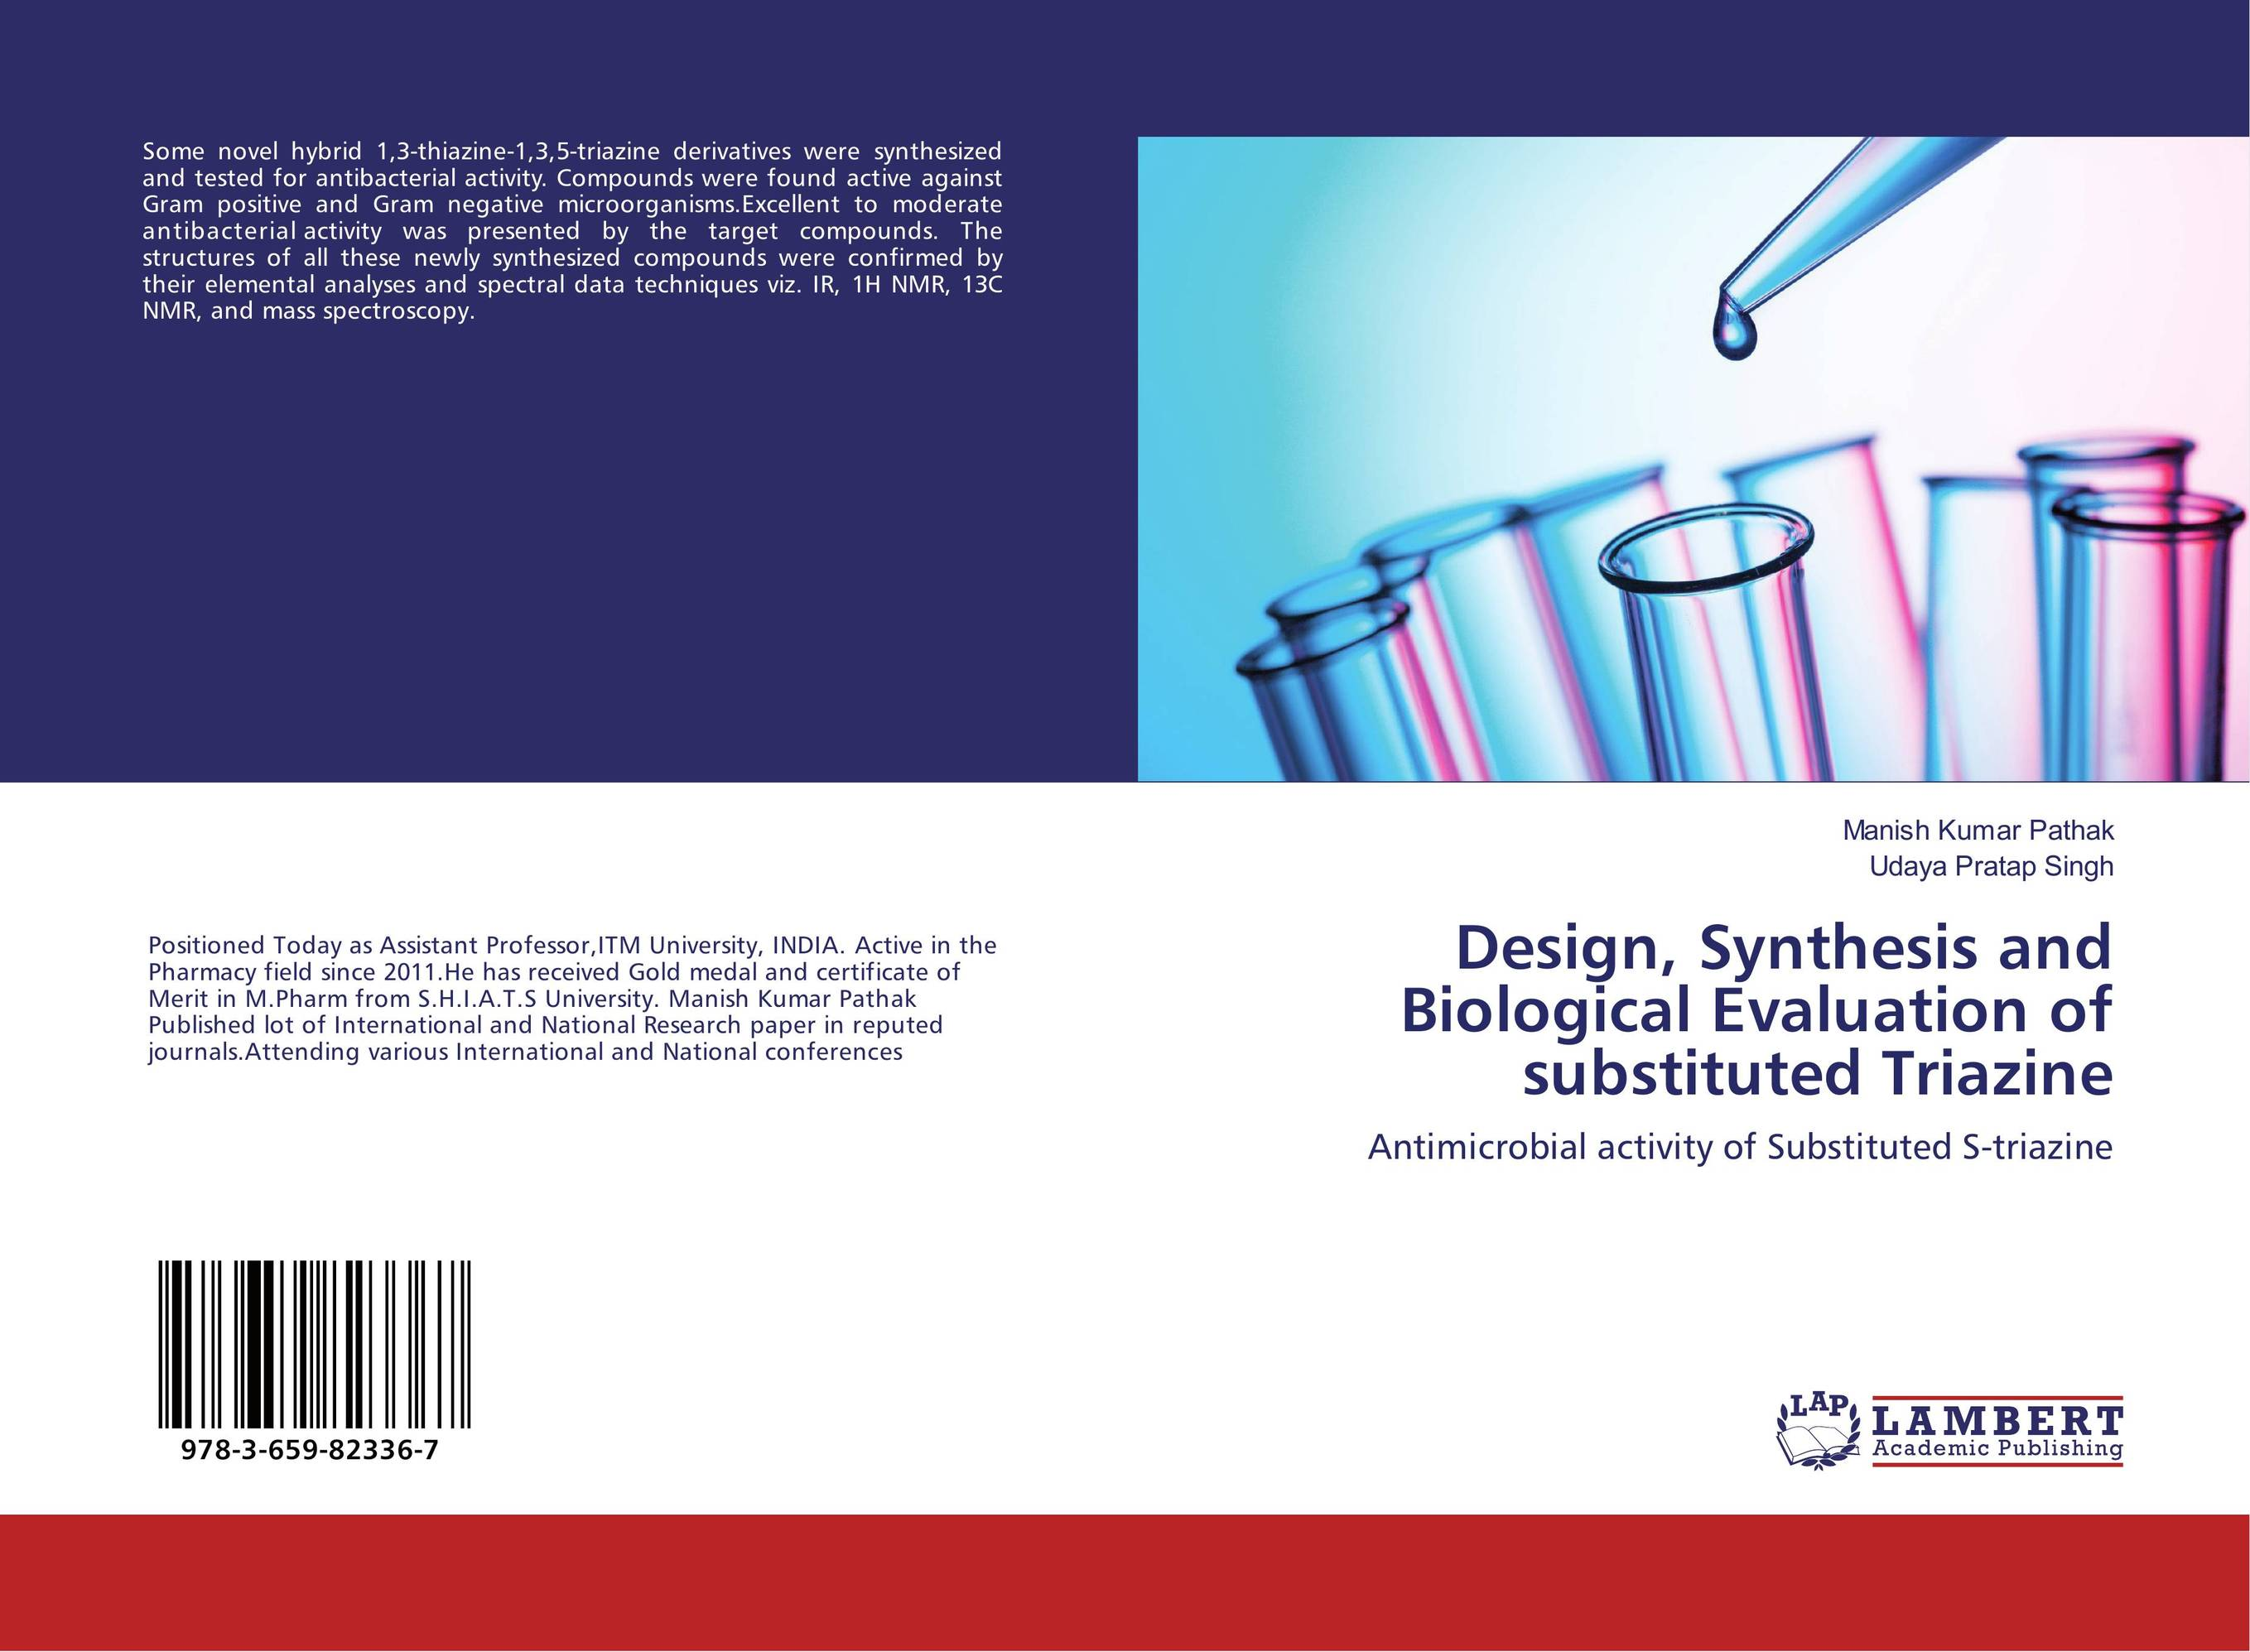 Design, Synthesis and Biological Evaluation of substituted Triazine sandip p vyas novel s triazine derivatives